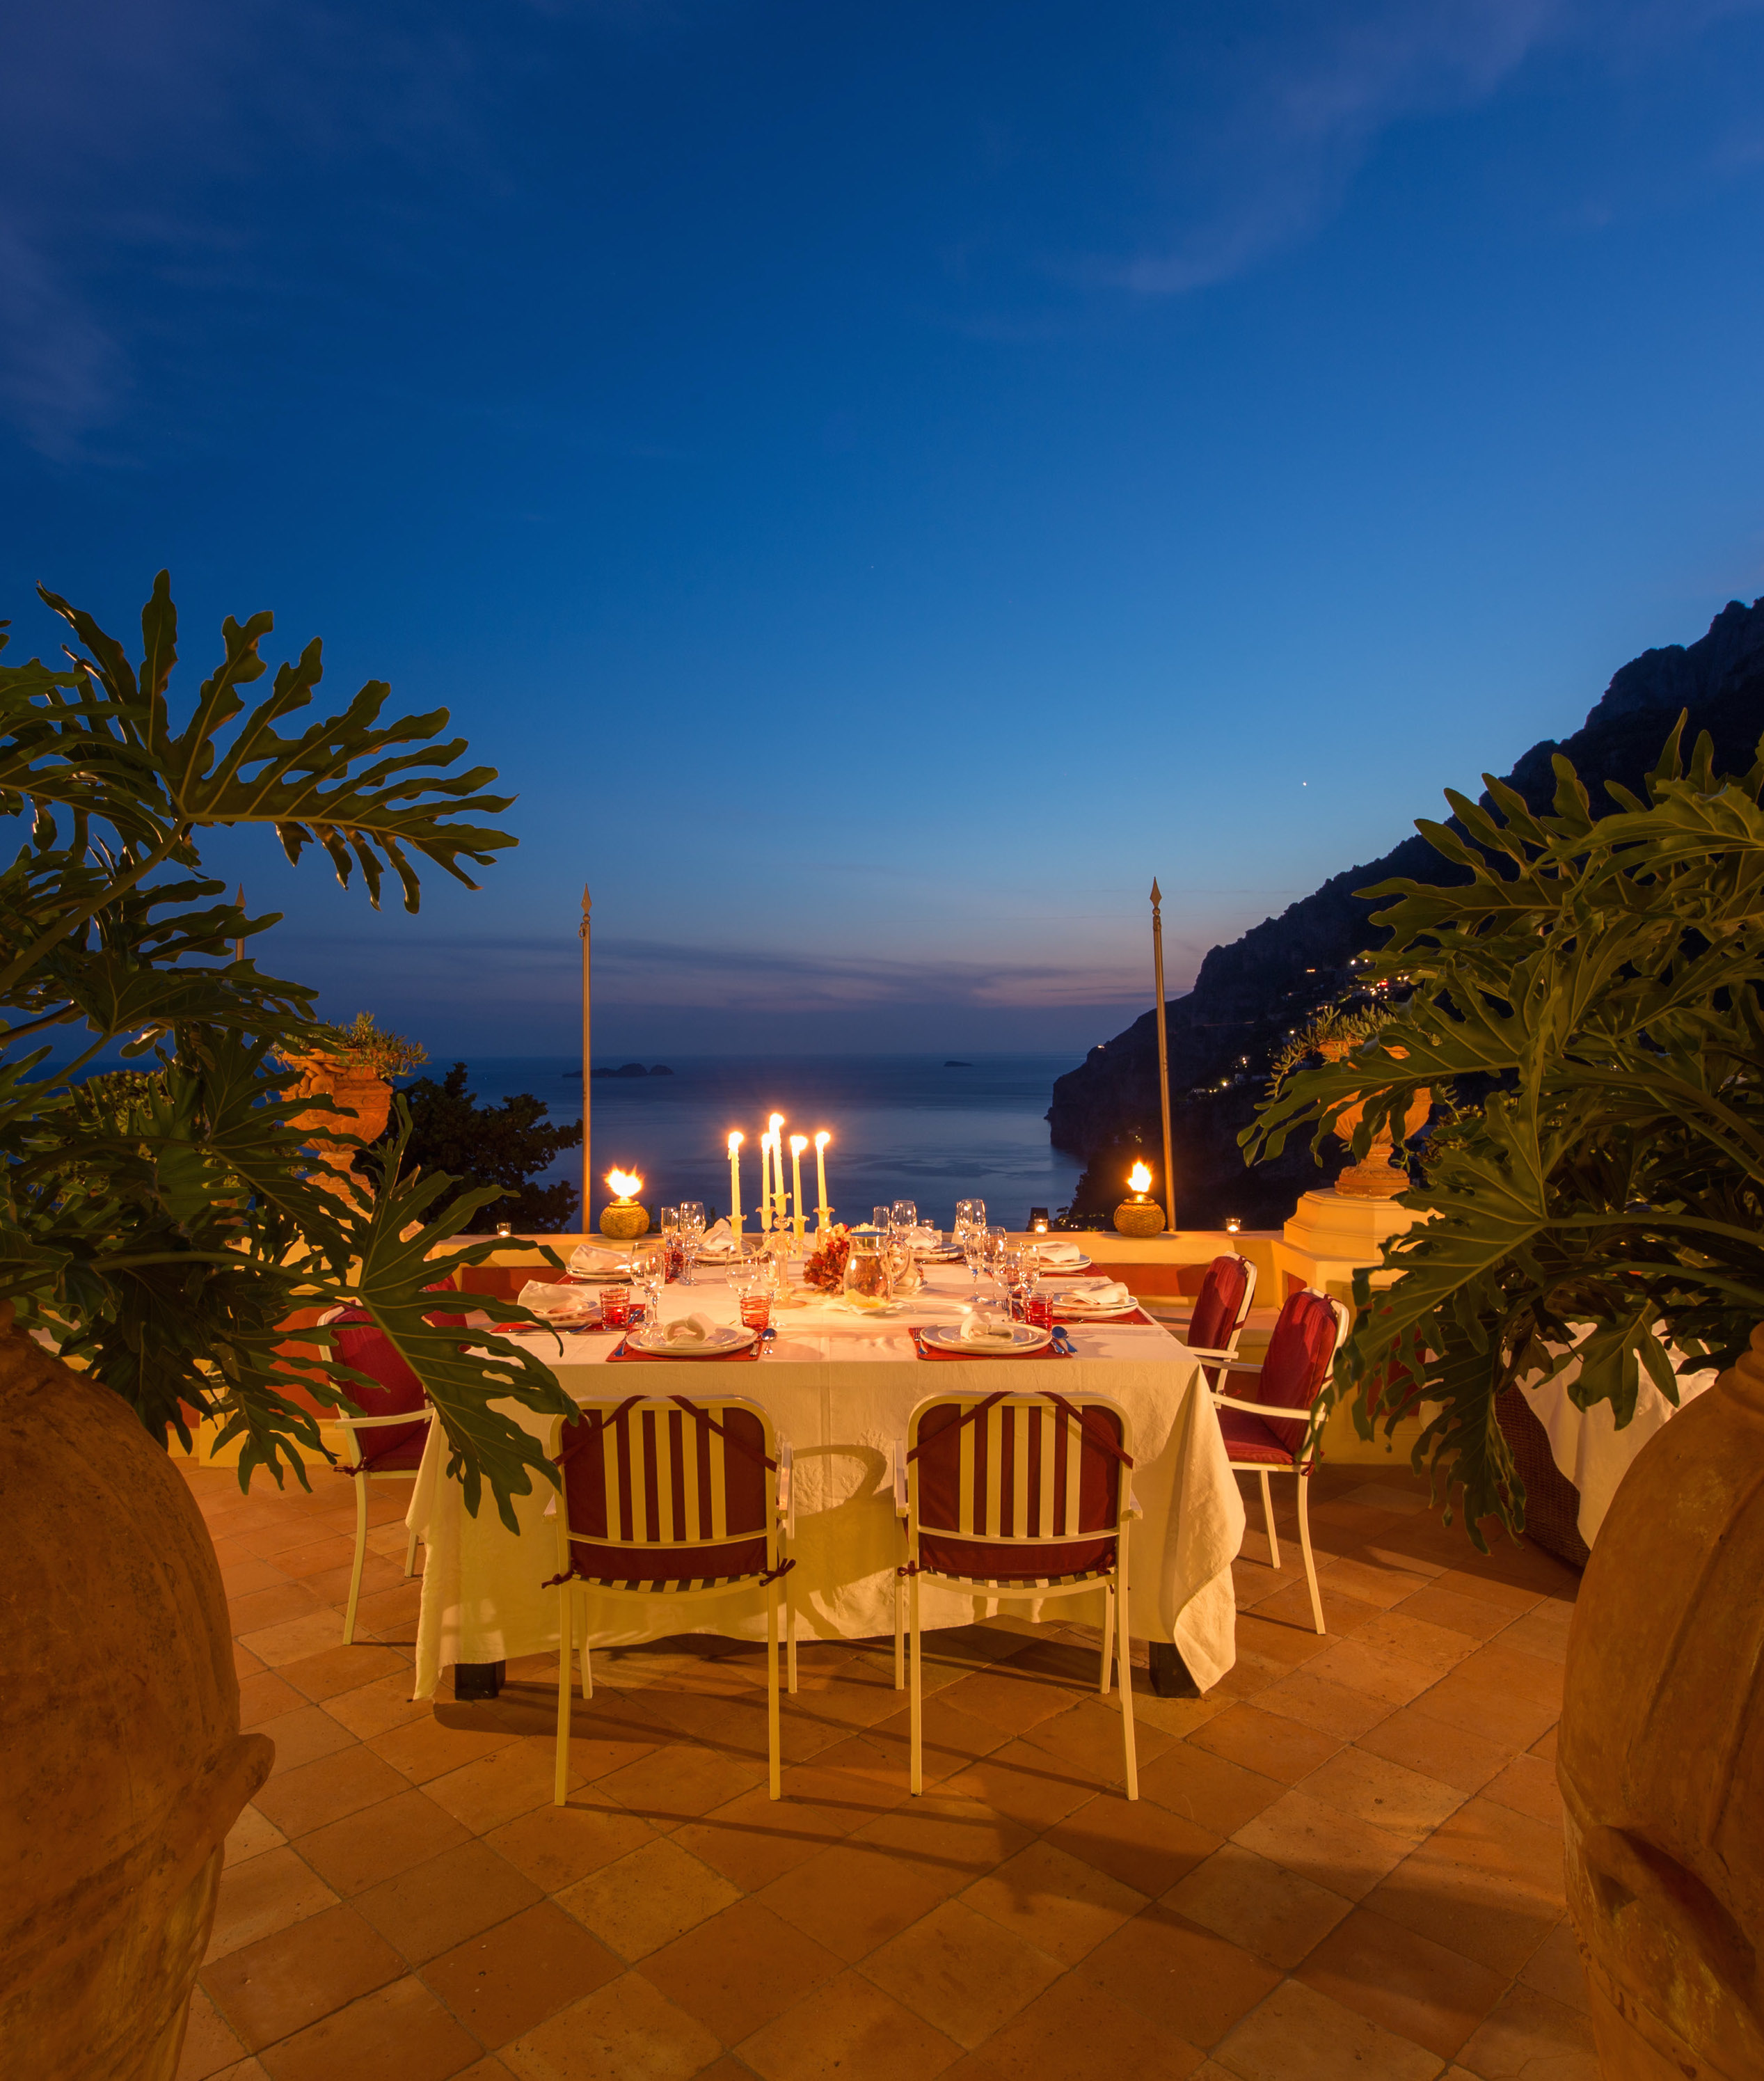 amalfi coast luxury properties archives - italian allure travel